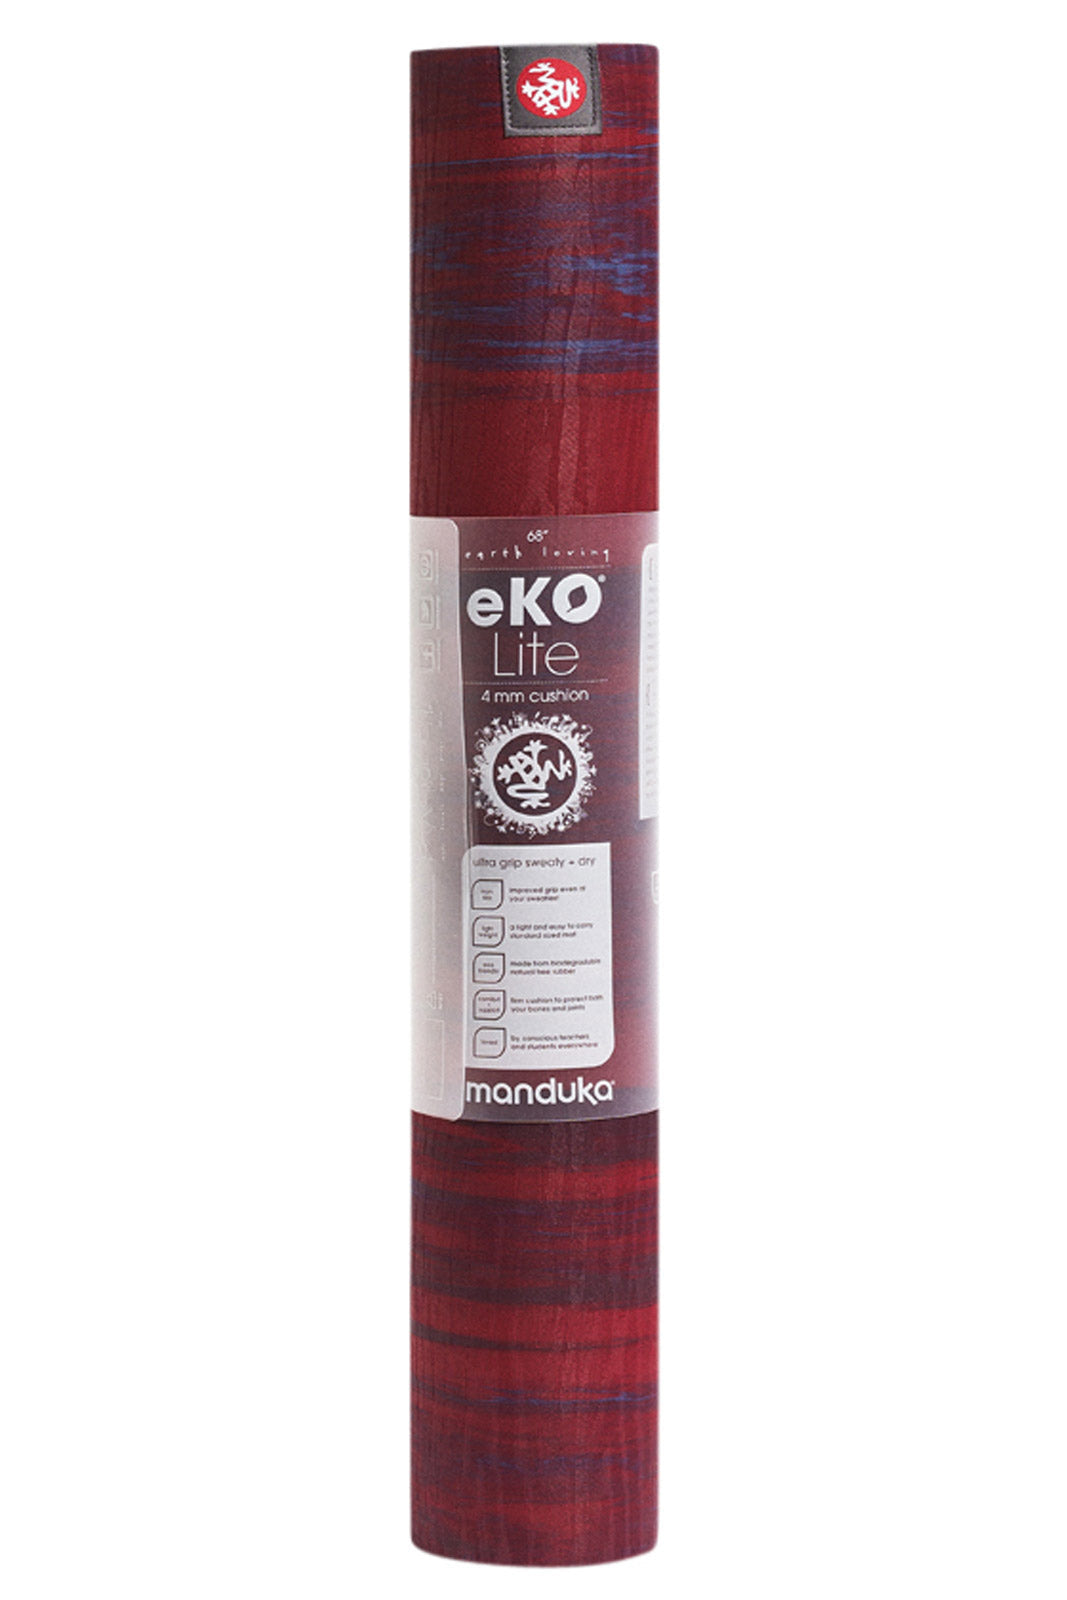 Manduka eKO Lite 4mm - Resound image 5 - The Sports Edit